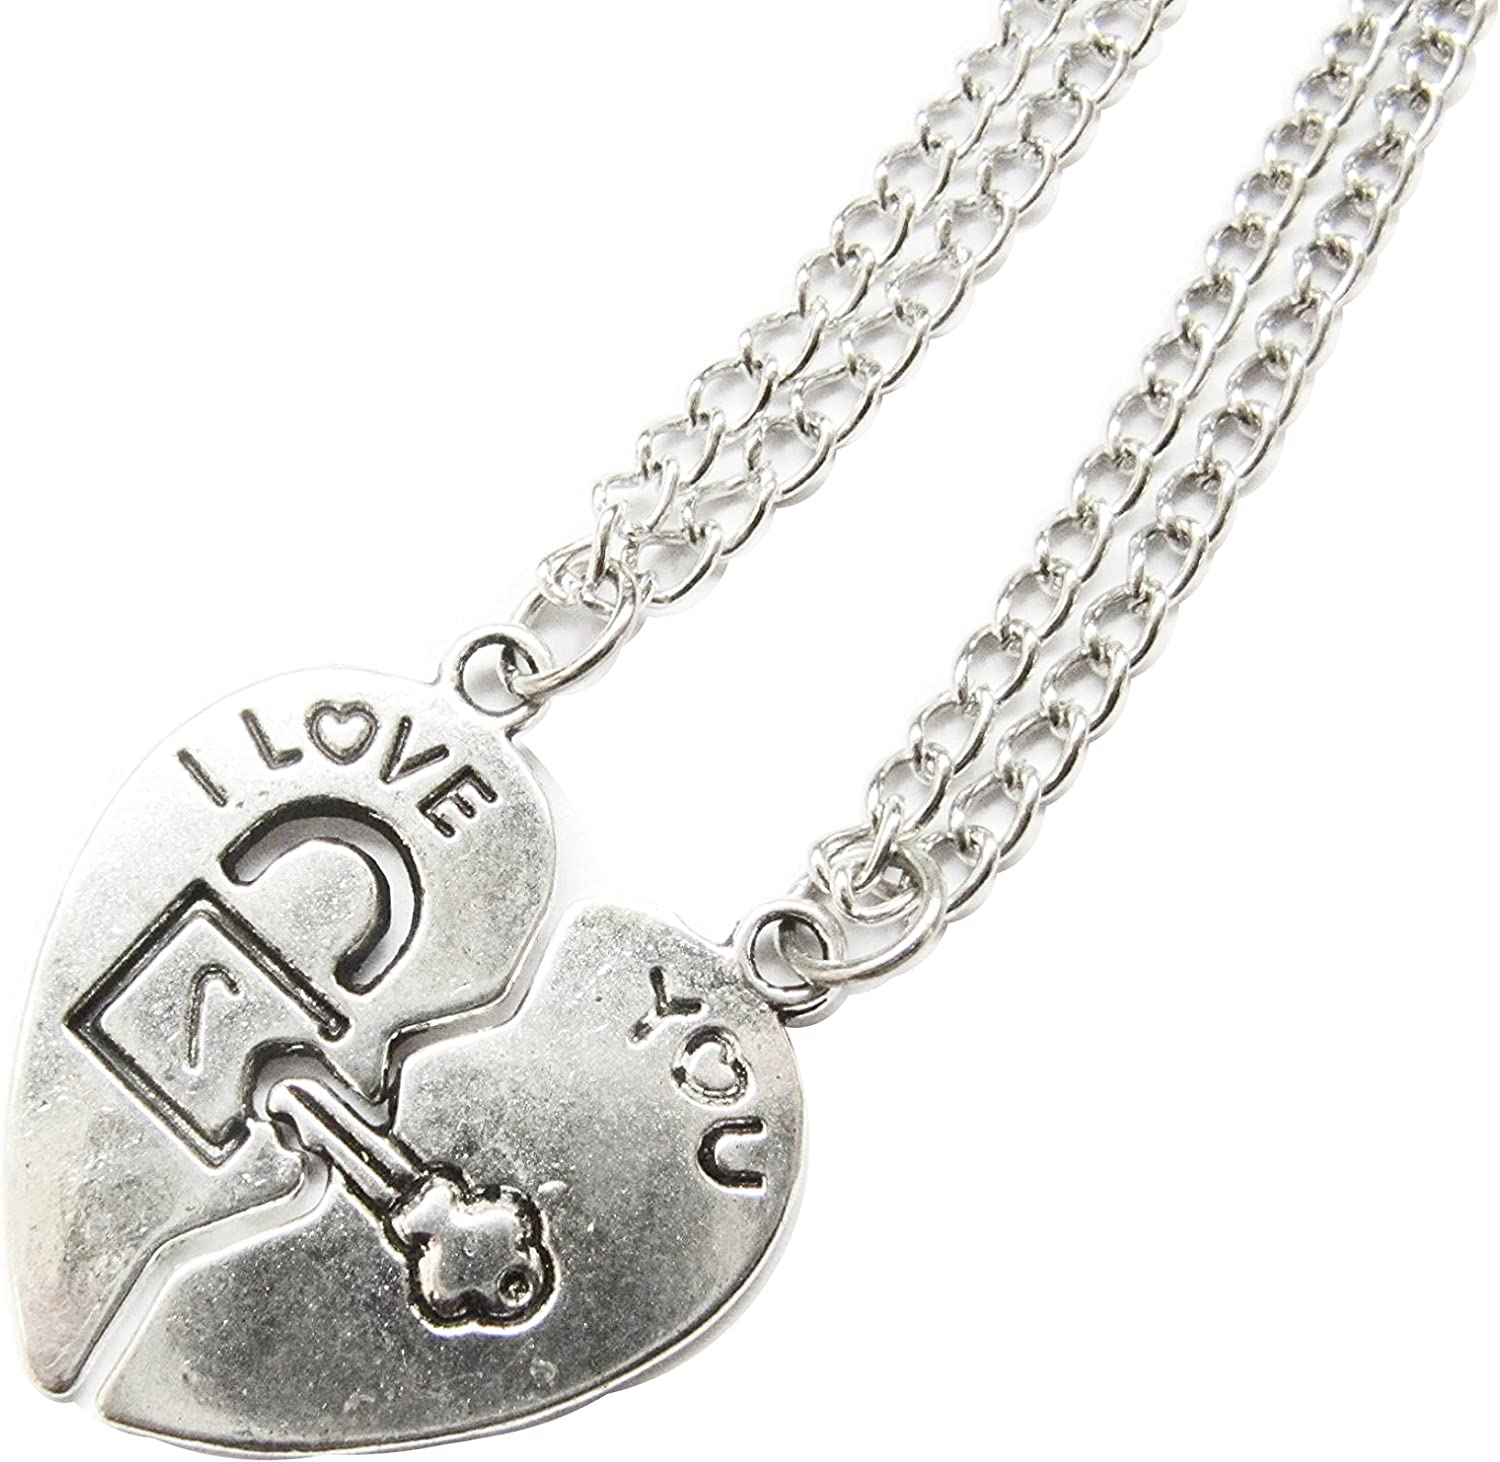 I Love You Heart Necklaces,Couples Pair of Split Half Heart Necklaces - His & Hers Jewelry, Love Necklace